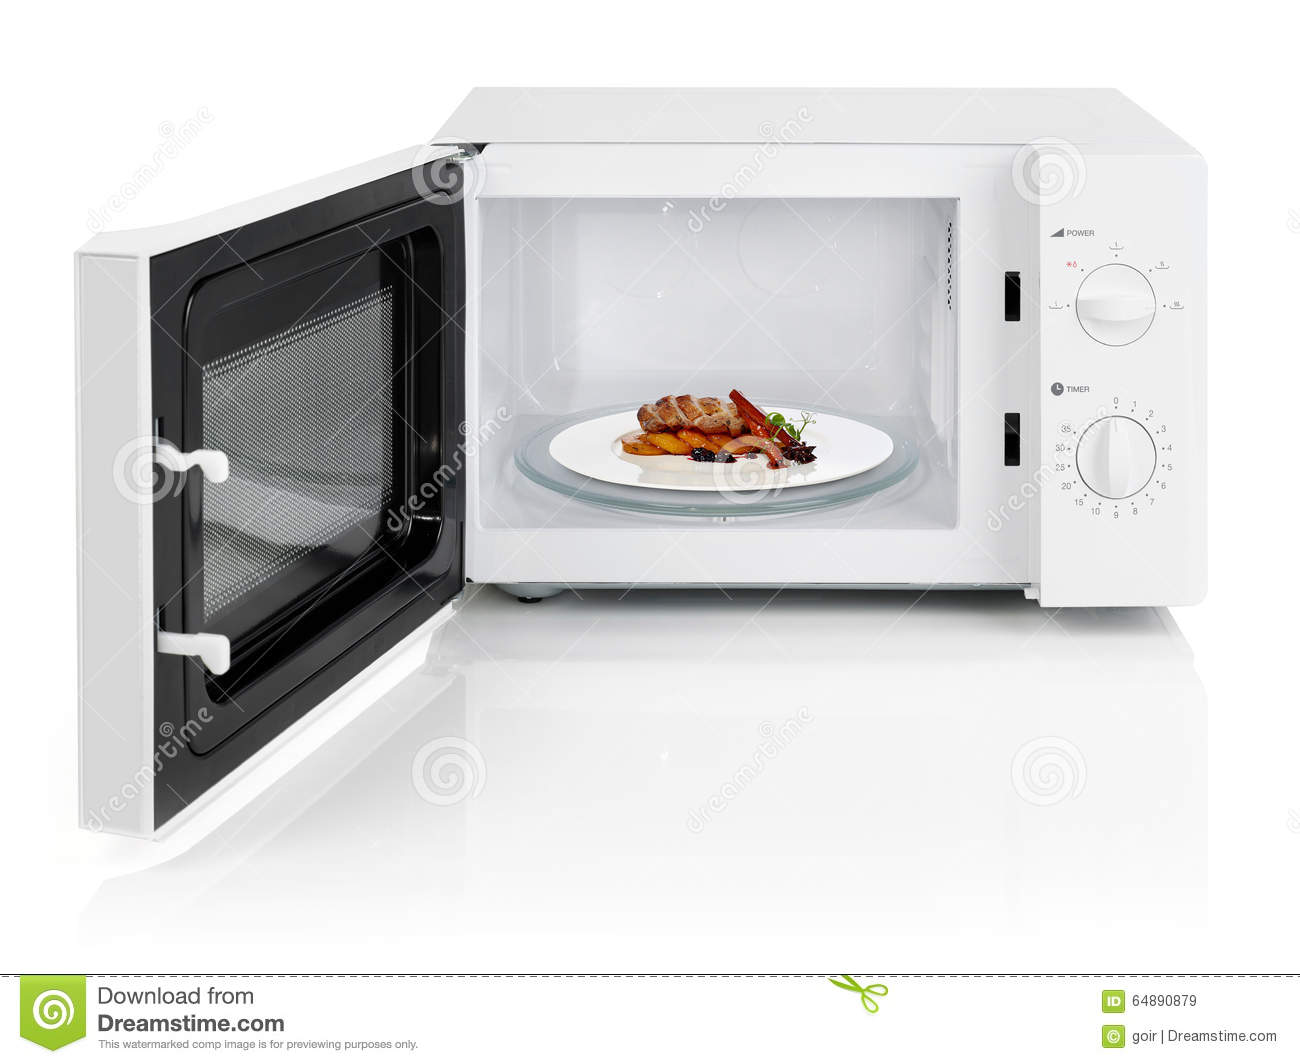 Microwave Oven Stock Photo - Image: 64890879